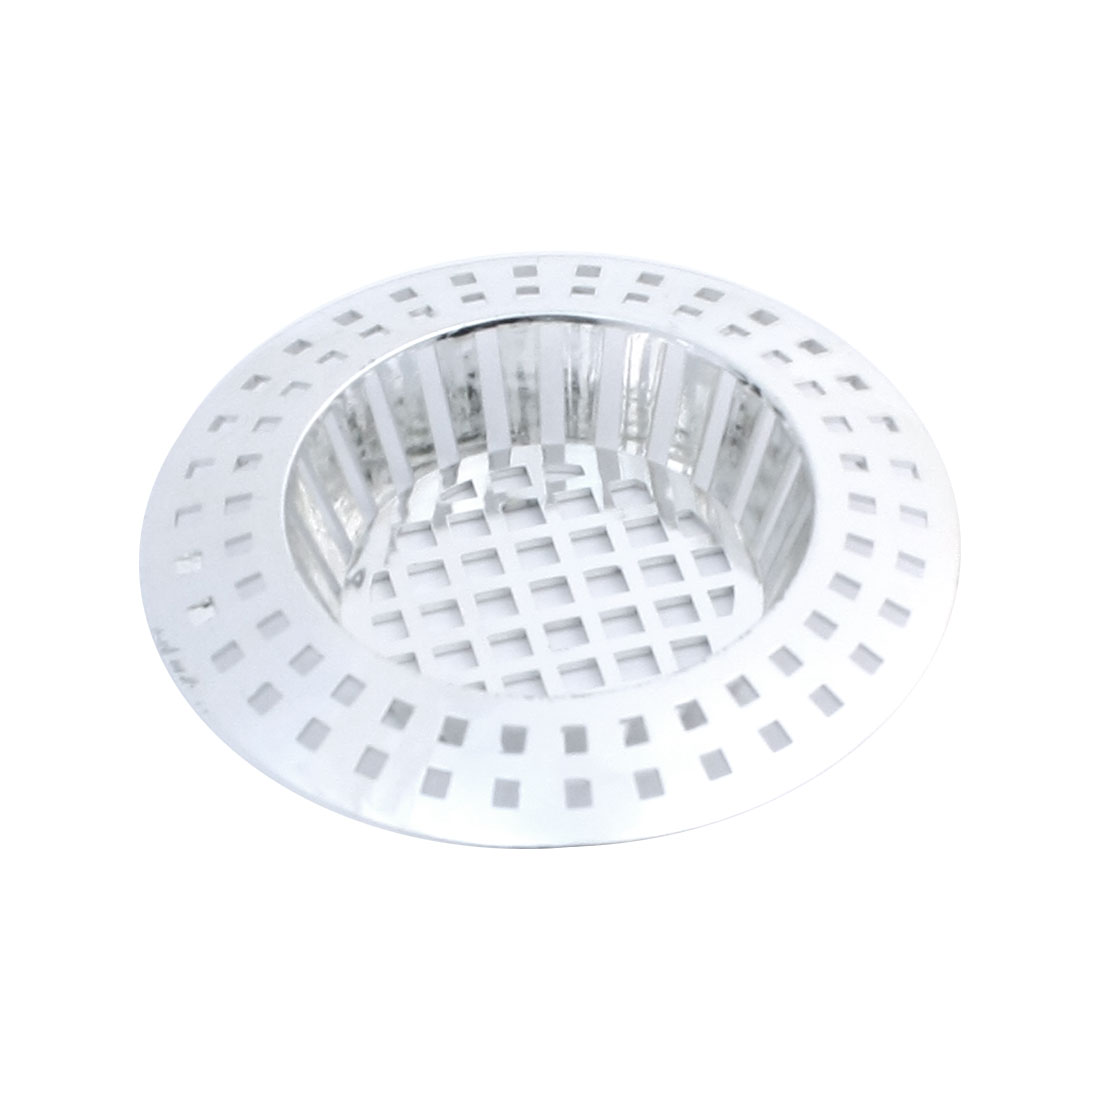 Silver Tone Kitchen Basin Plastic Mesh Sink Garbage Strainer